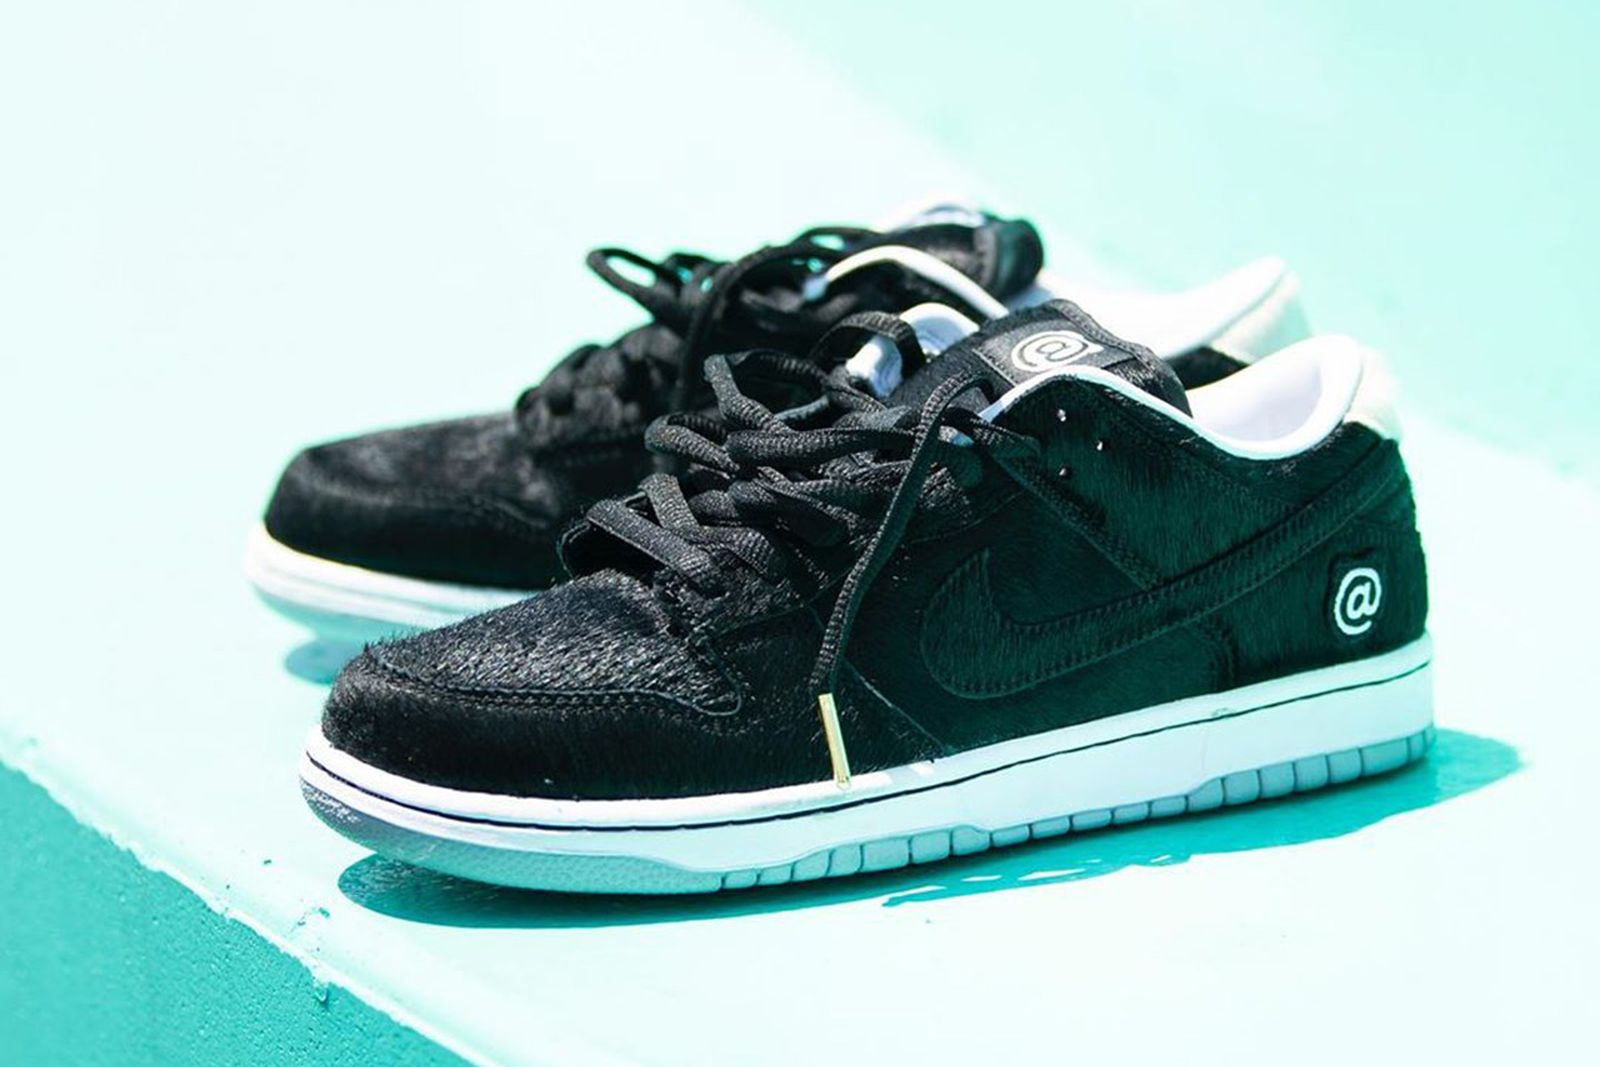 medicom-toy-nike-sb-dunk-low-release-date-price-01